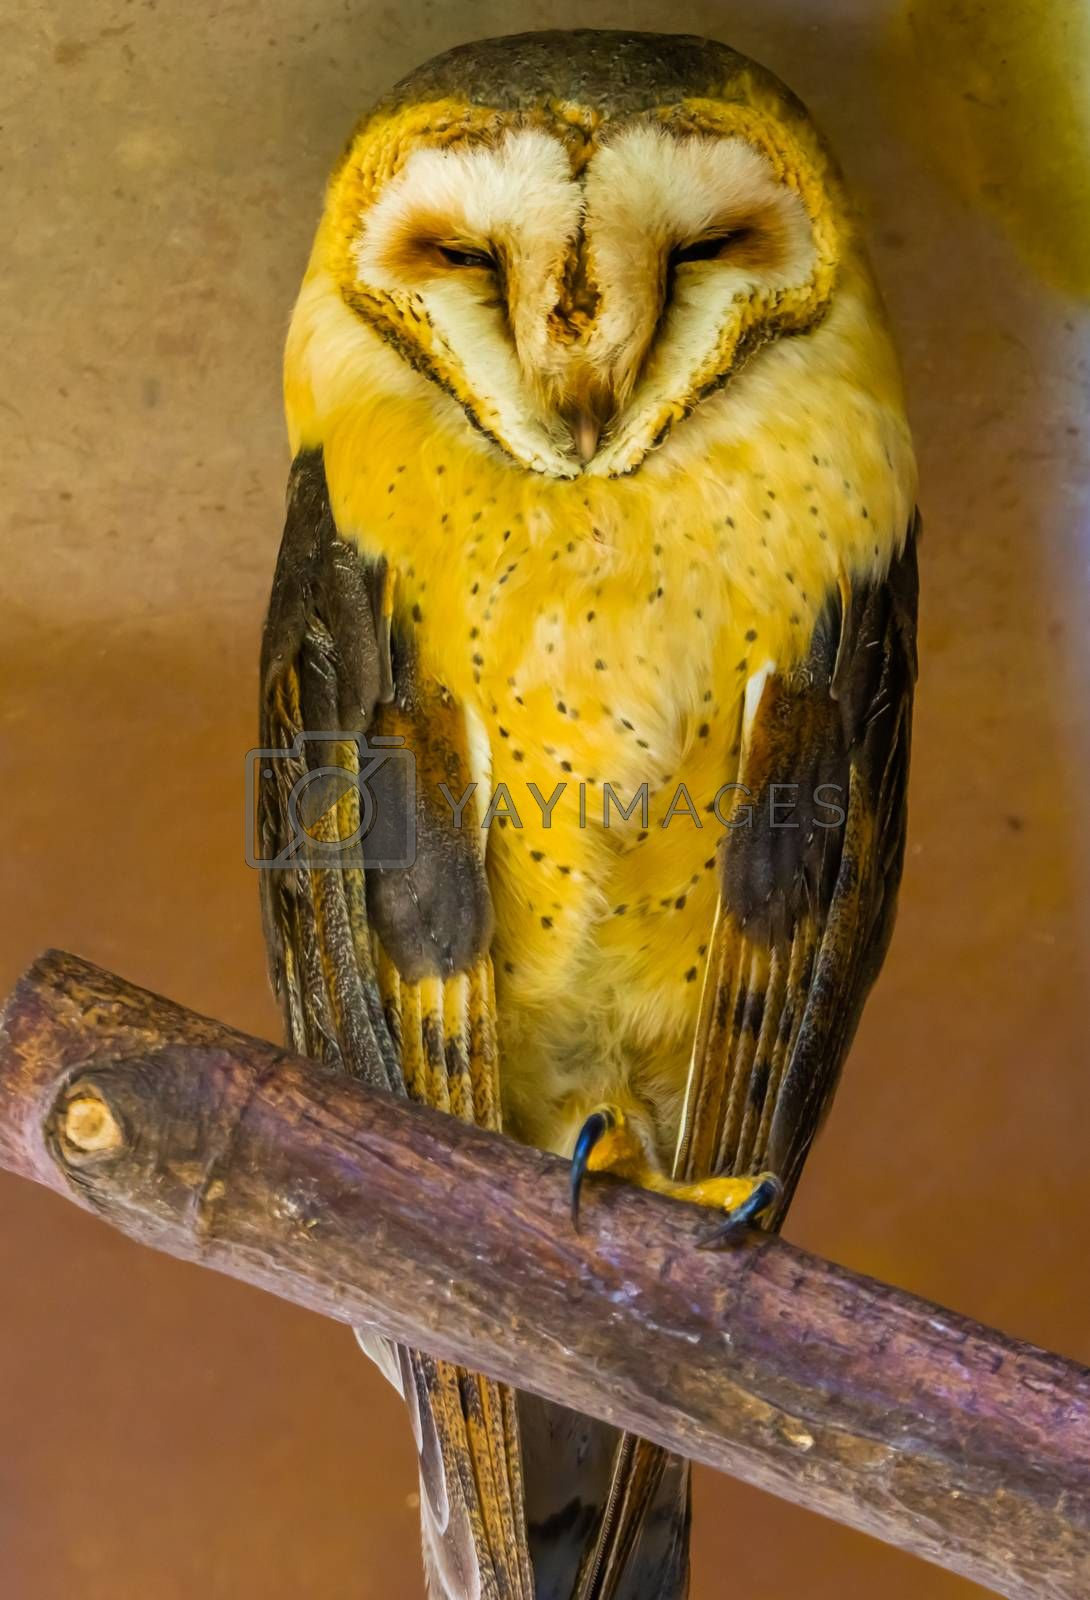 beautiful portrait of a common barn owl, bird specie from the Netherlands